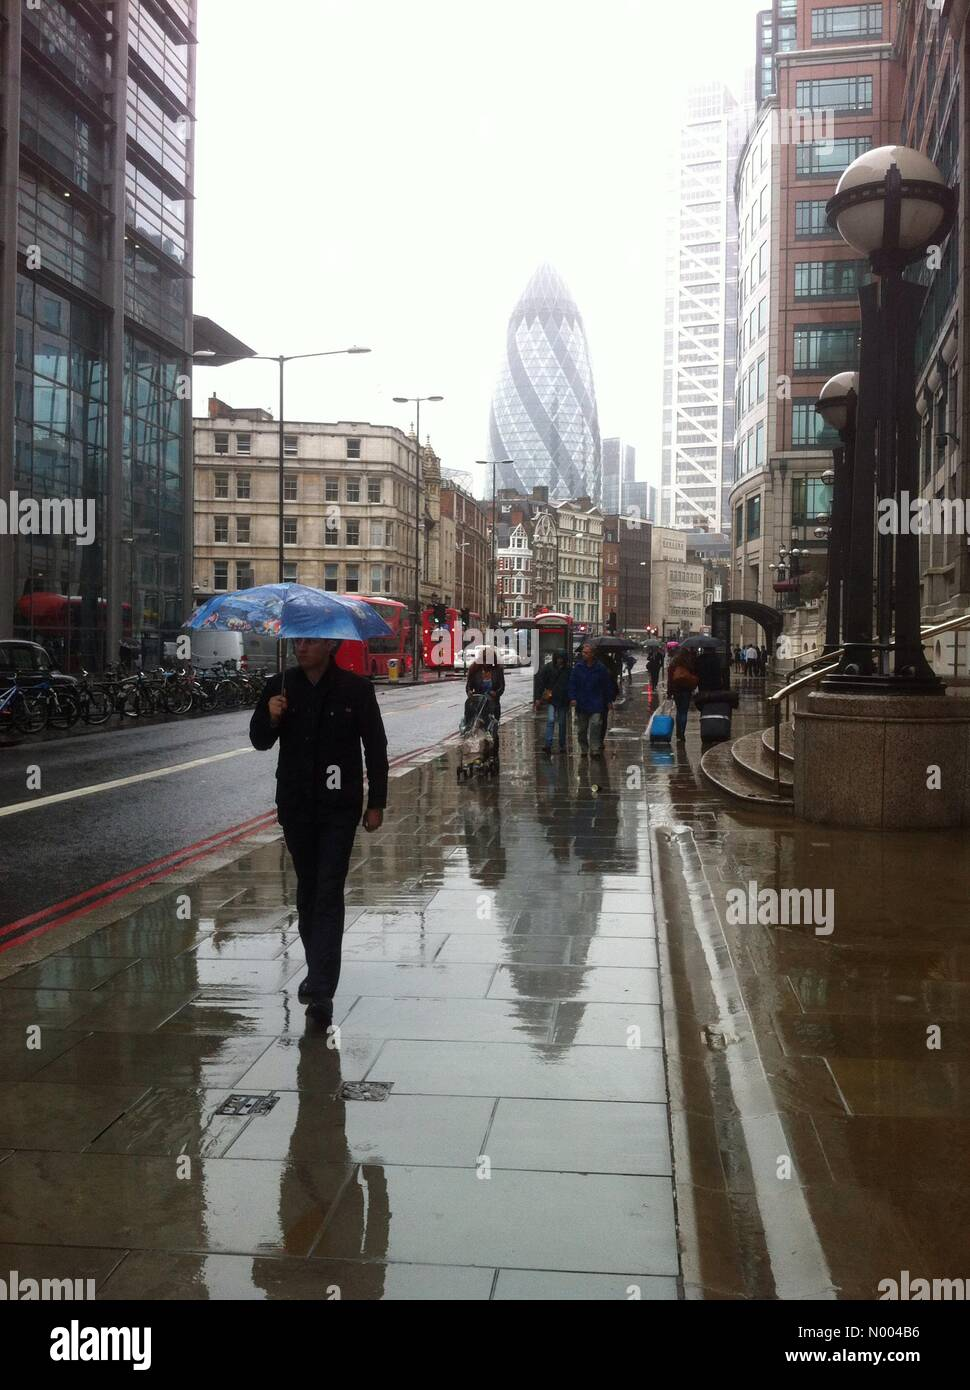 london weather - photo #29